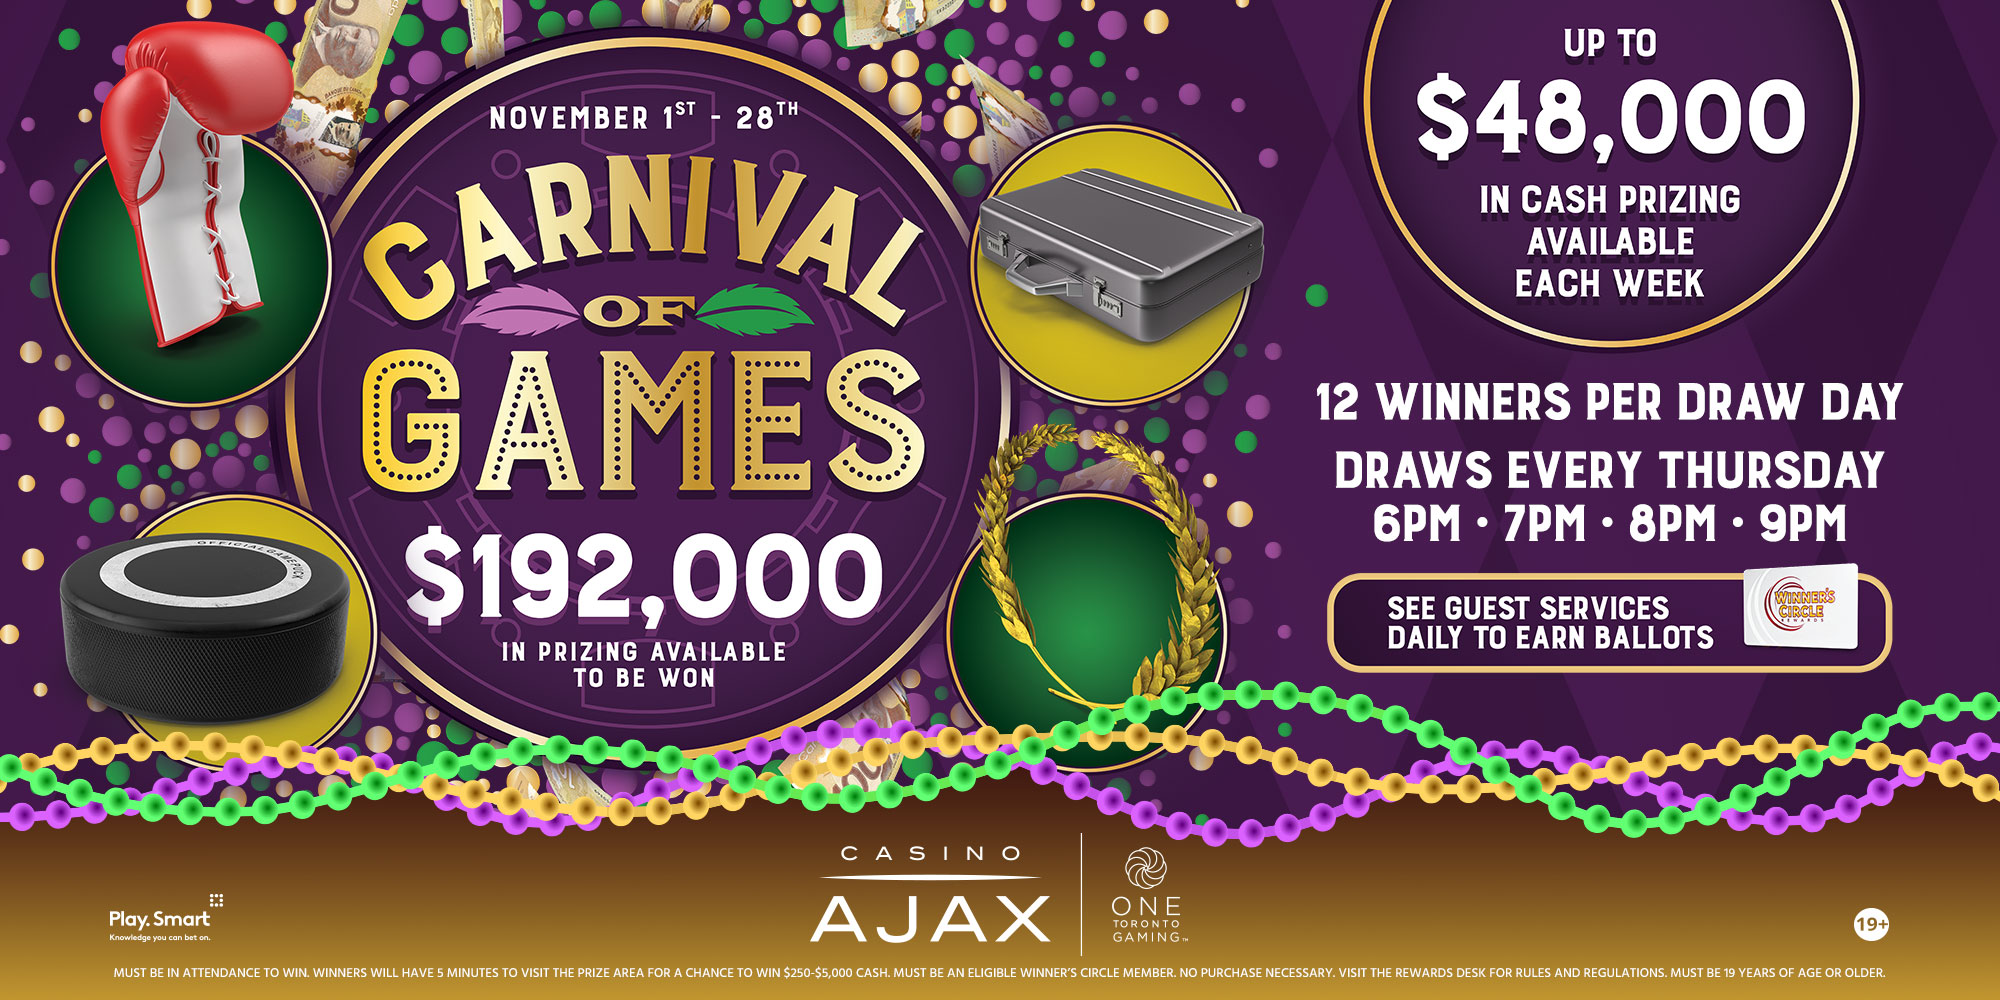 Carnival of Games Promotion